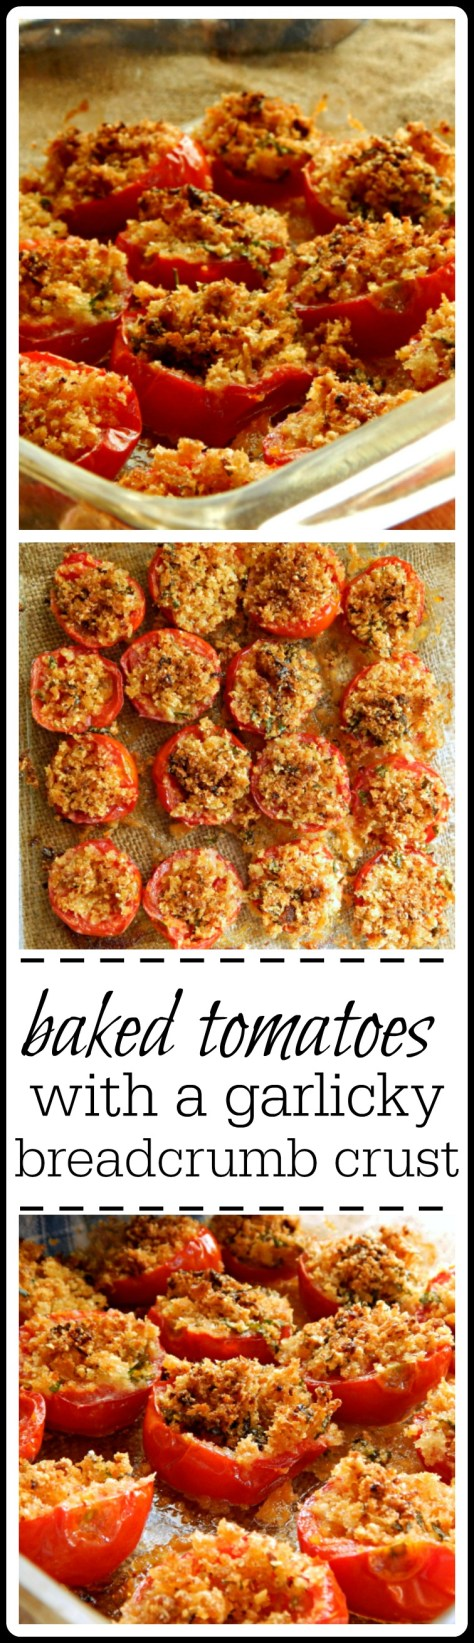 Baked Tomatoes - but these are pretty darned special! Super easy and fast, too.